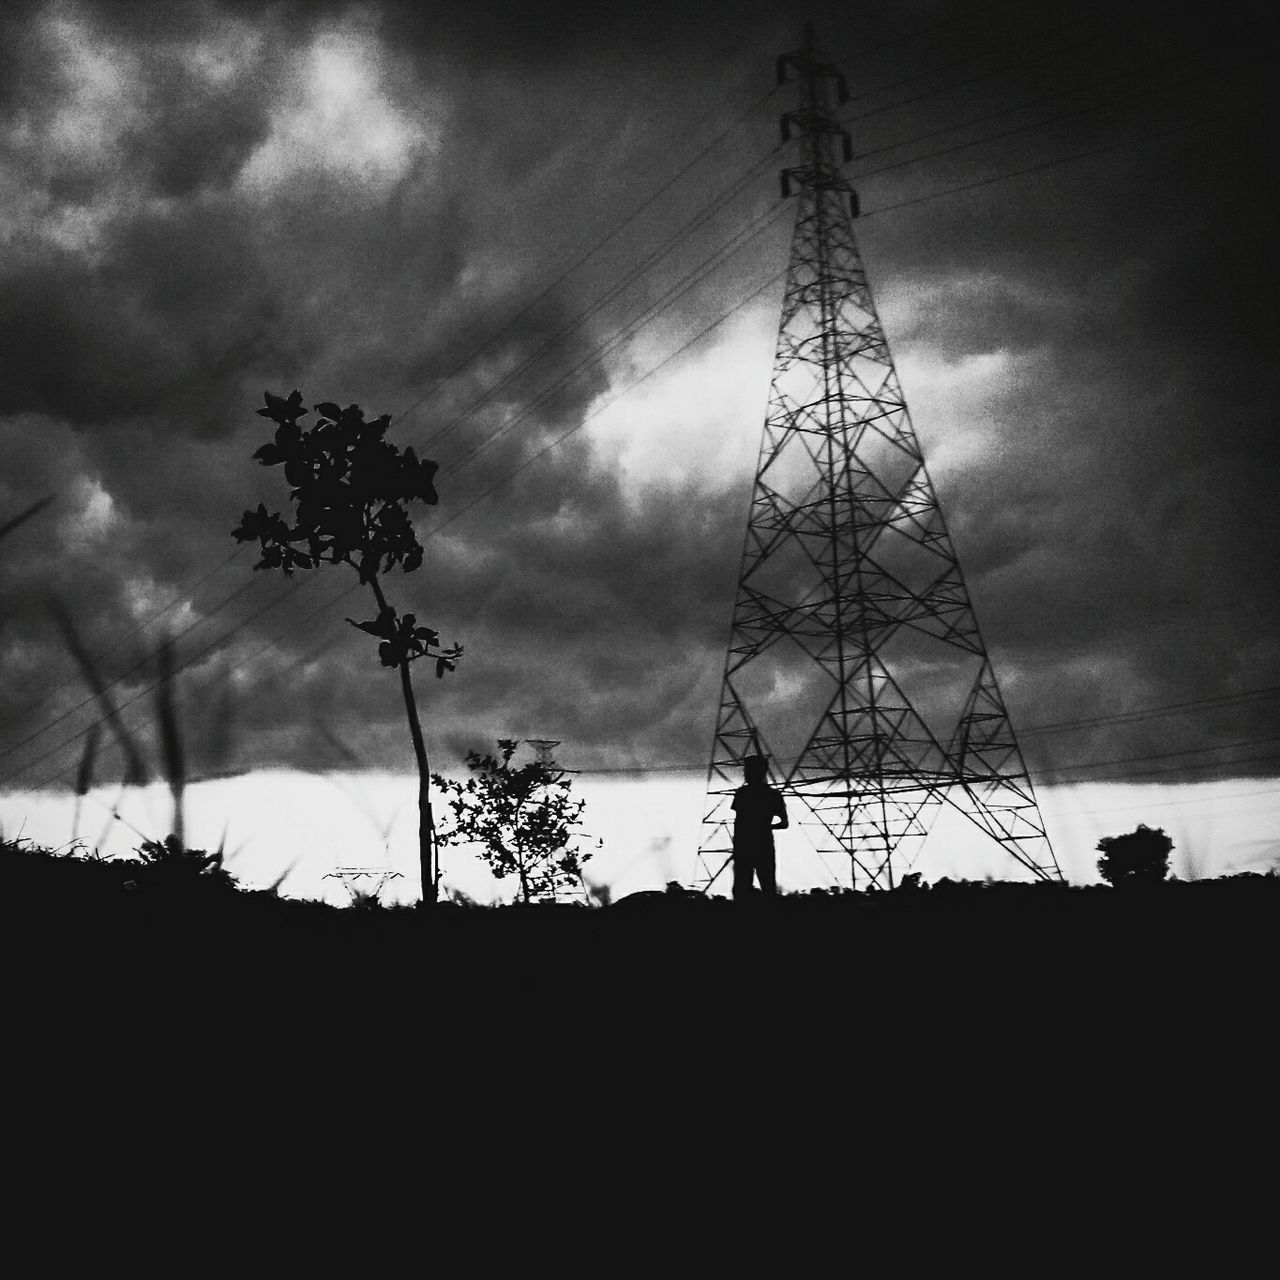 silhouette, tree, sky, electricity pylon, low angle view, cloud - sky, cable, electricity, fuel and power generation, day, outdoors, landscape, technology, nature, growth, no people